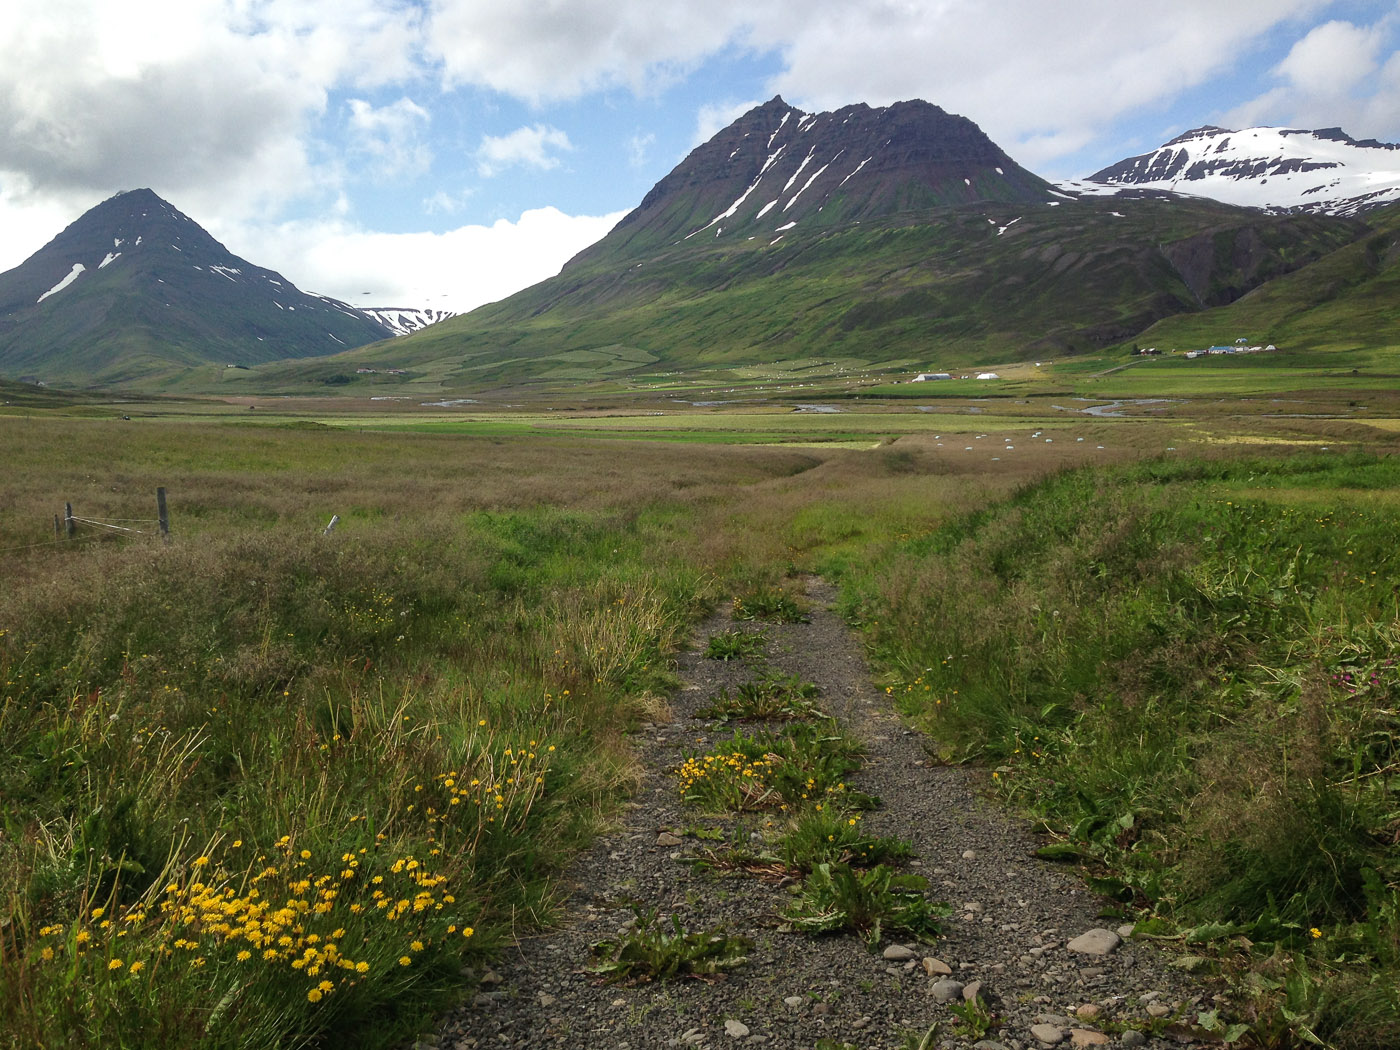 Northern Iceland - Svarfaðardalur. On vacation. - Hiking to lake Skeiðavatn. I. (21 July 2014)